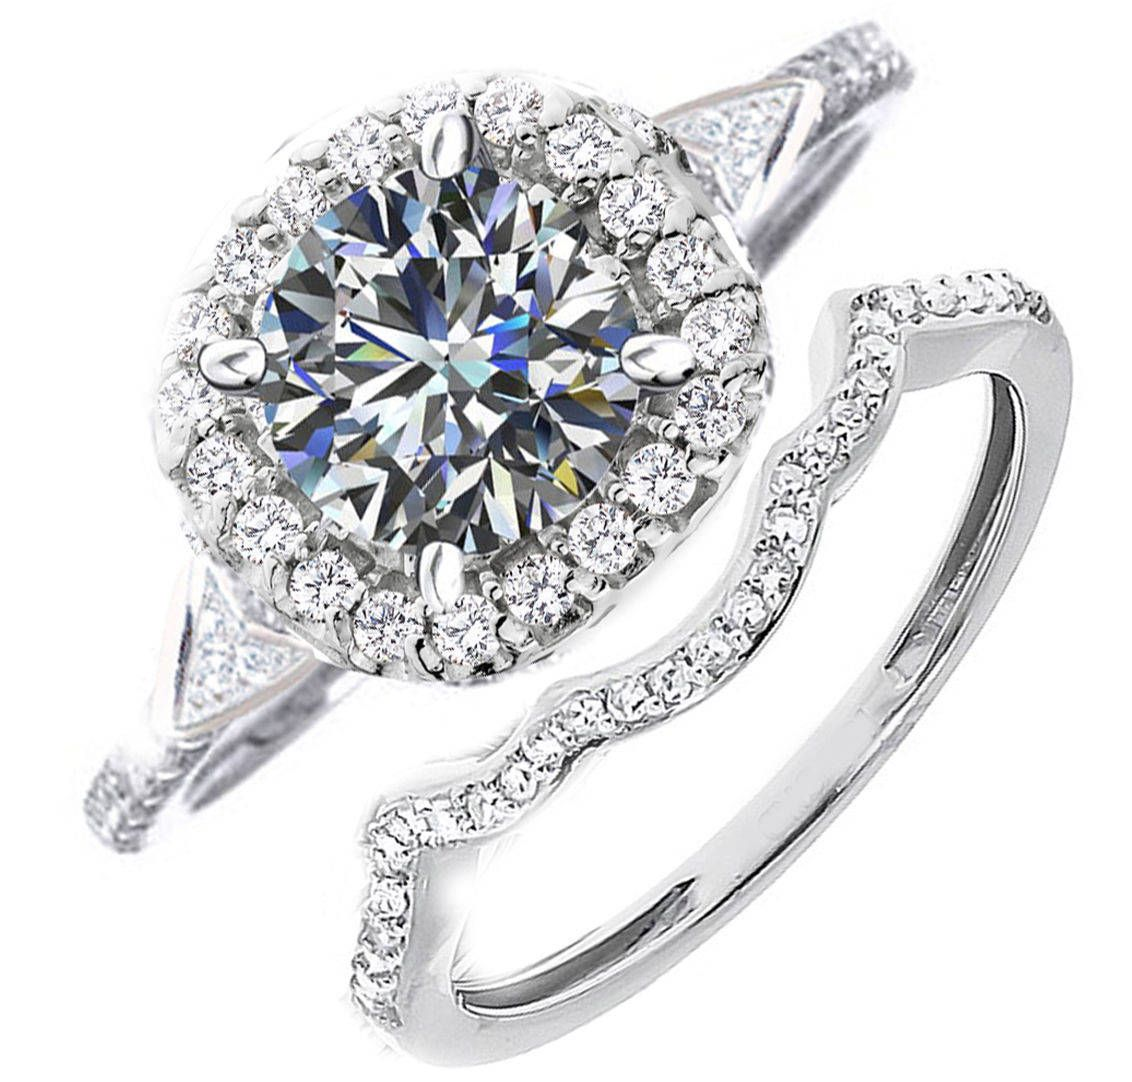 Ct diamond engagement and wedding ring set size by